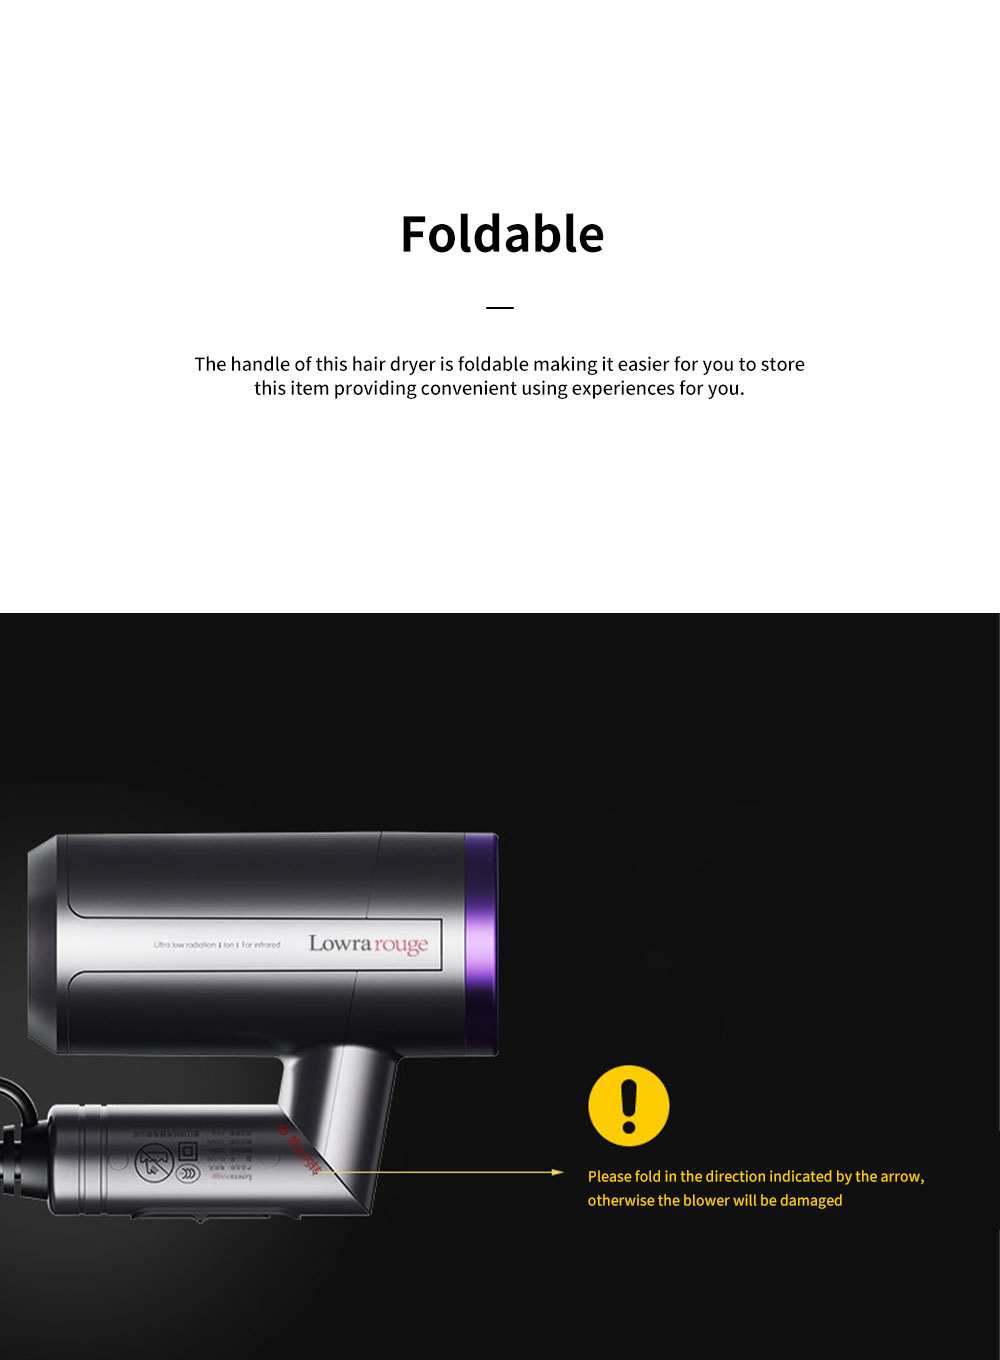 Minimalist Foldable Household Electric Har Dryer Low-Radiation Negative Ion Protection Bioceramic Far Infrared Heating Hair Dryer 4